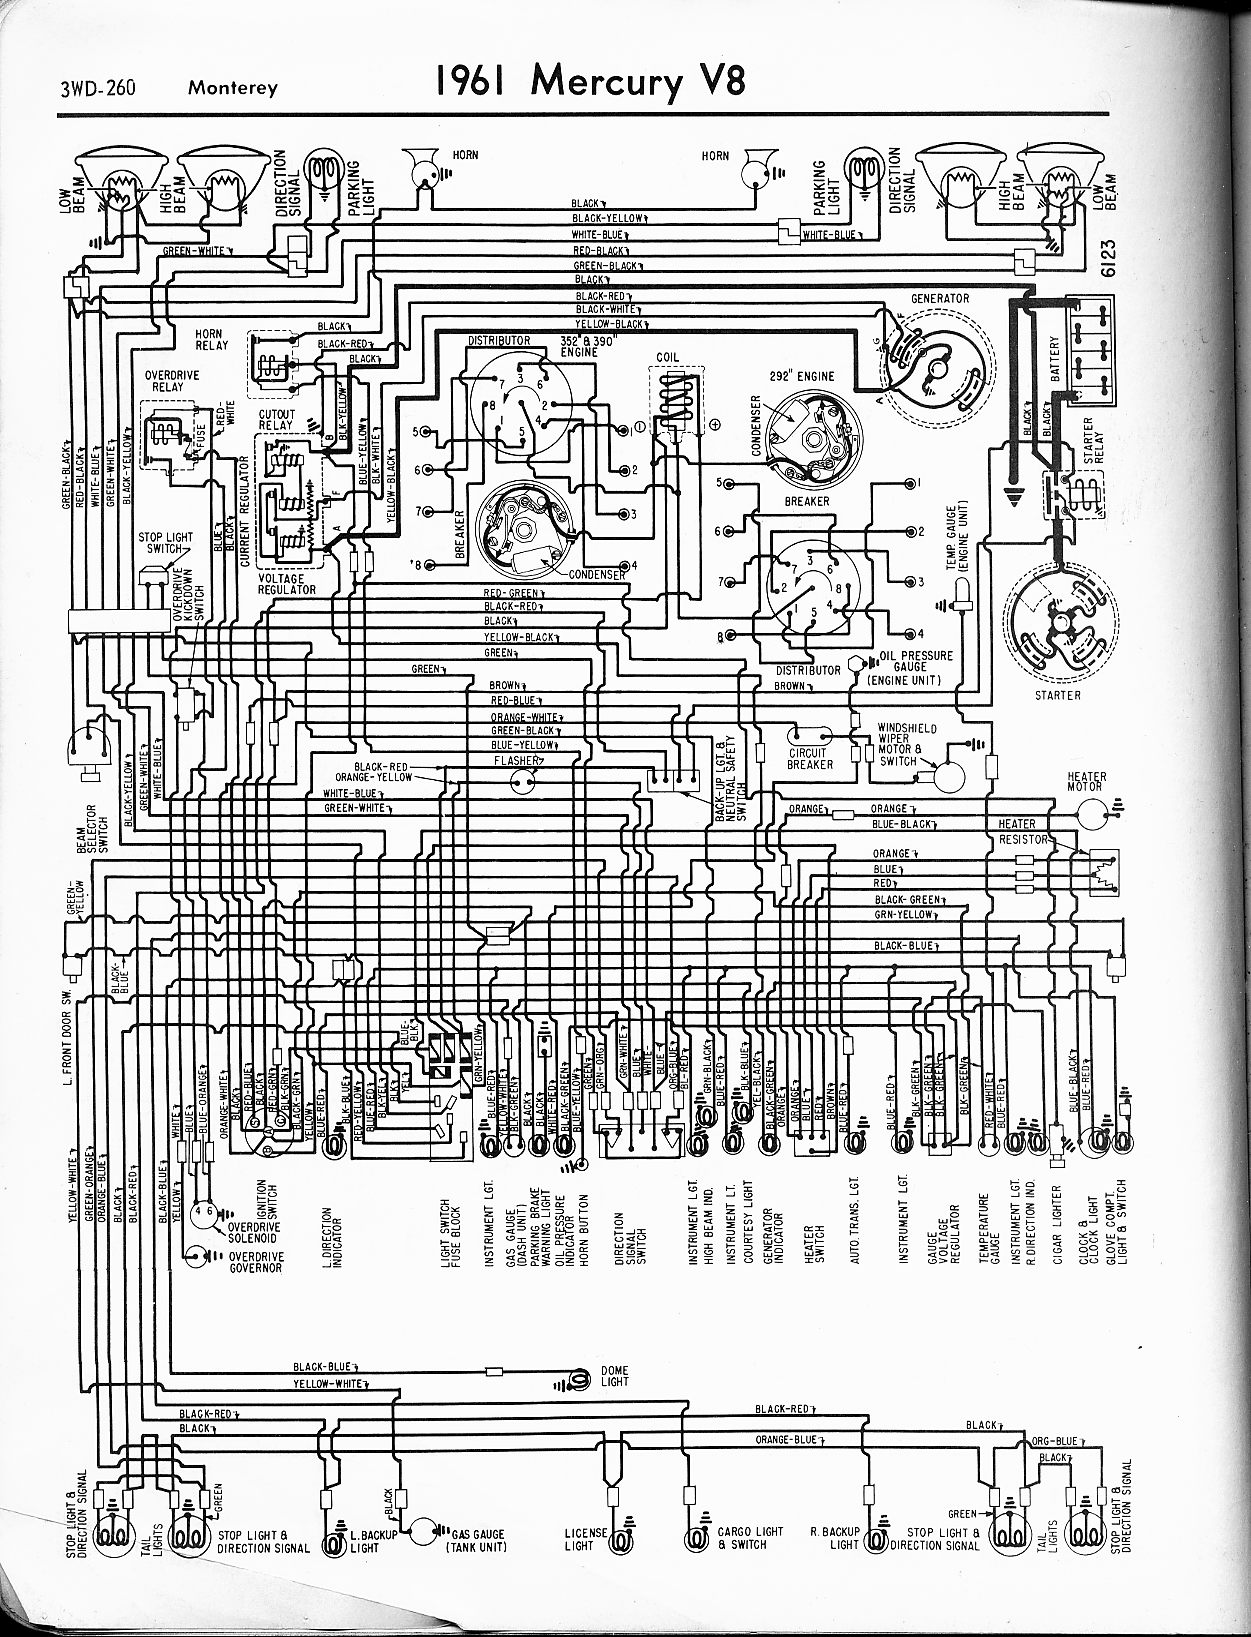 1999 Mercury Cougar Wiring Diagram: Mercury wiring diagrams - The Old Car Manual Project,Design